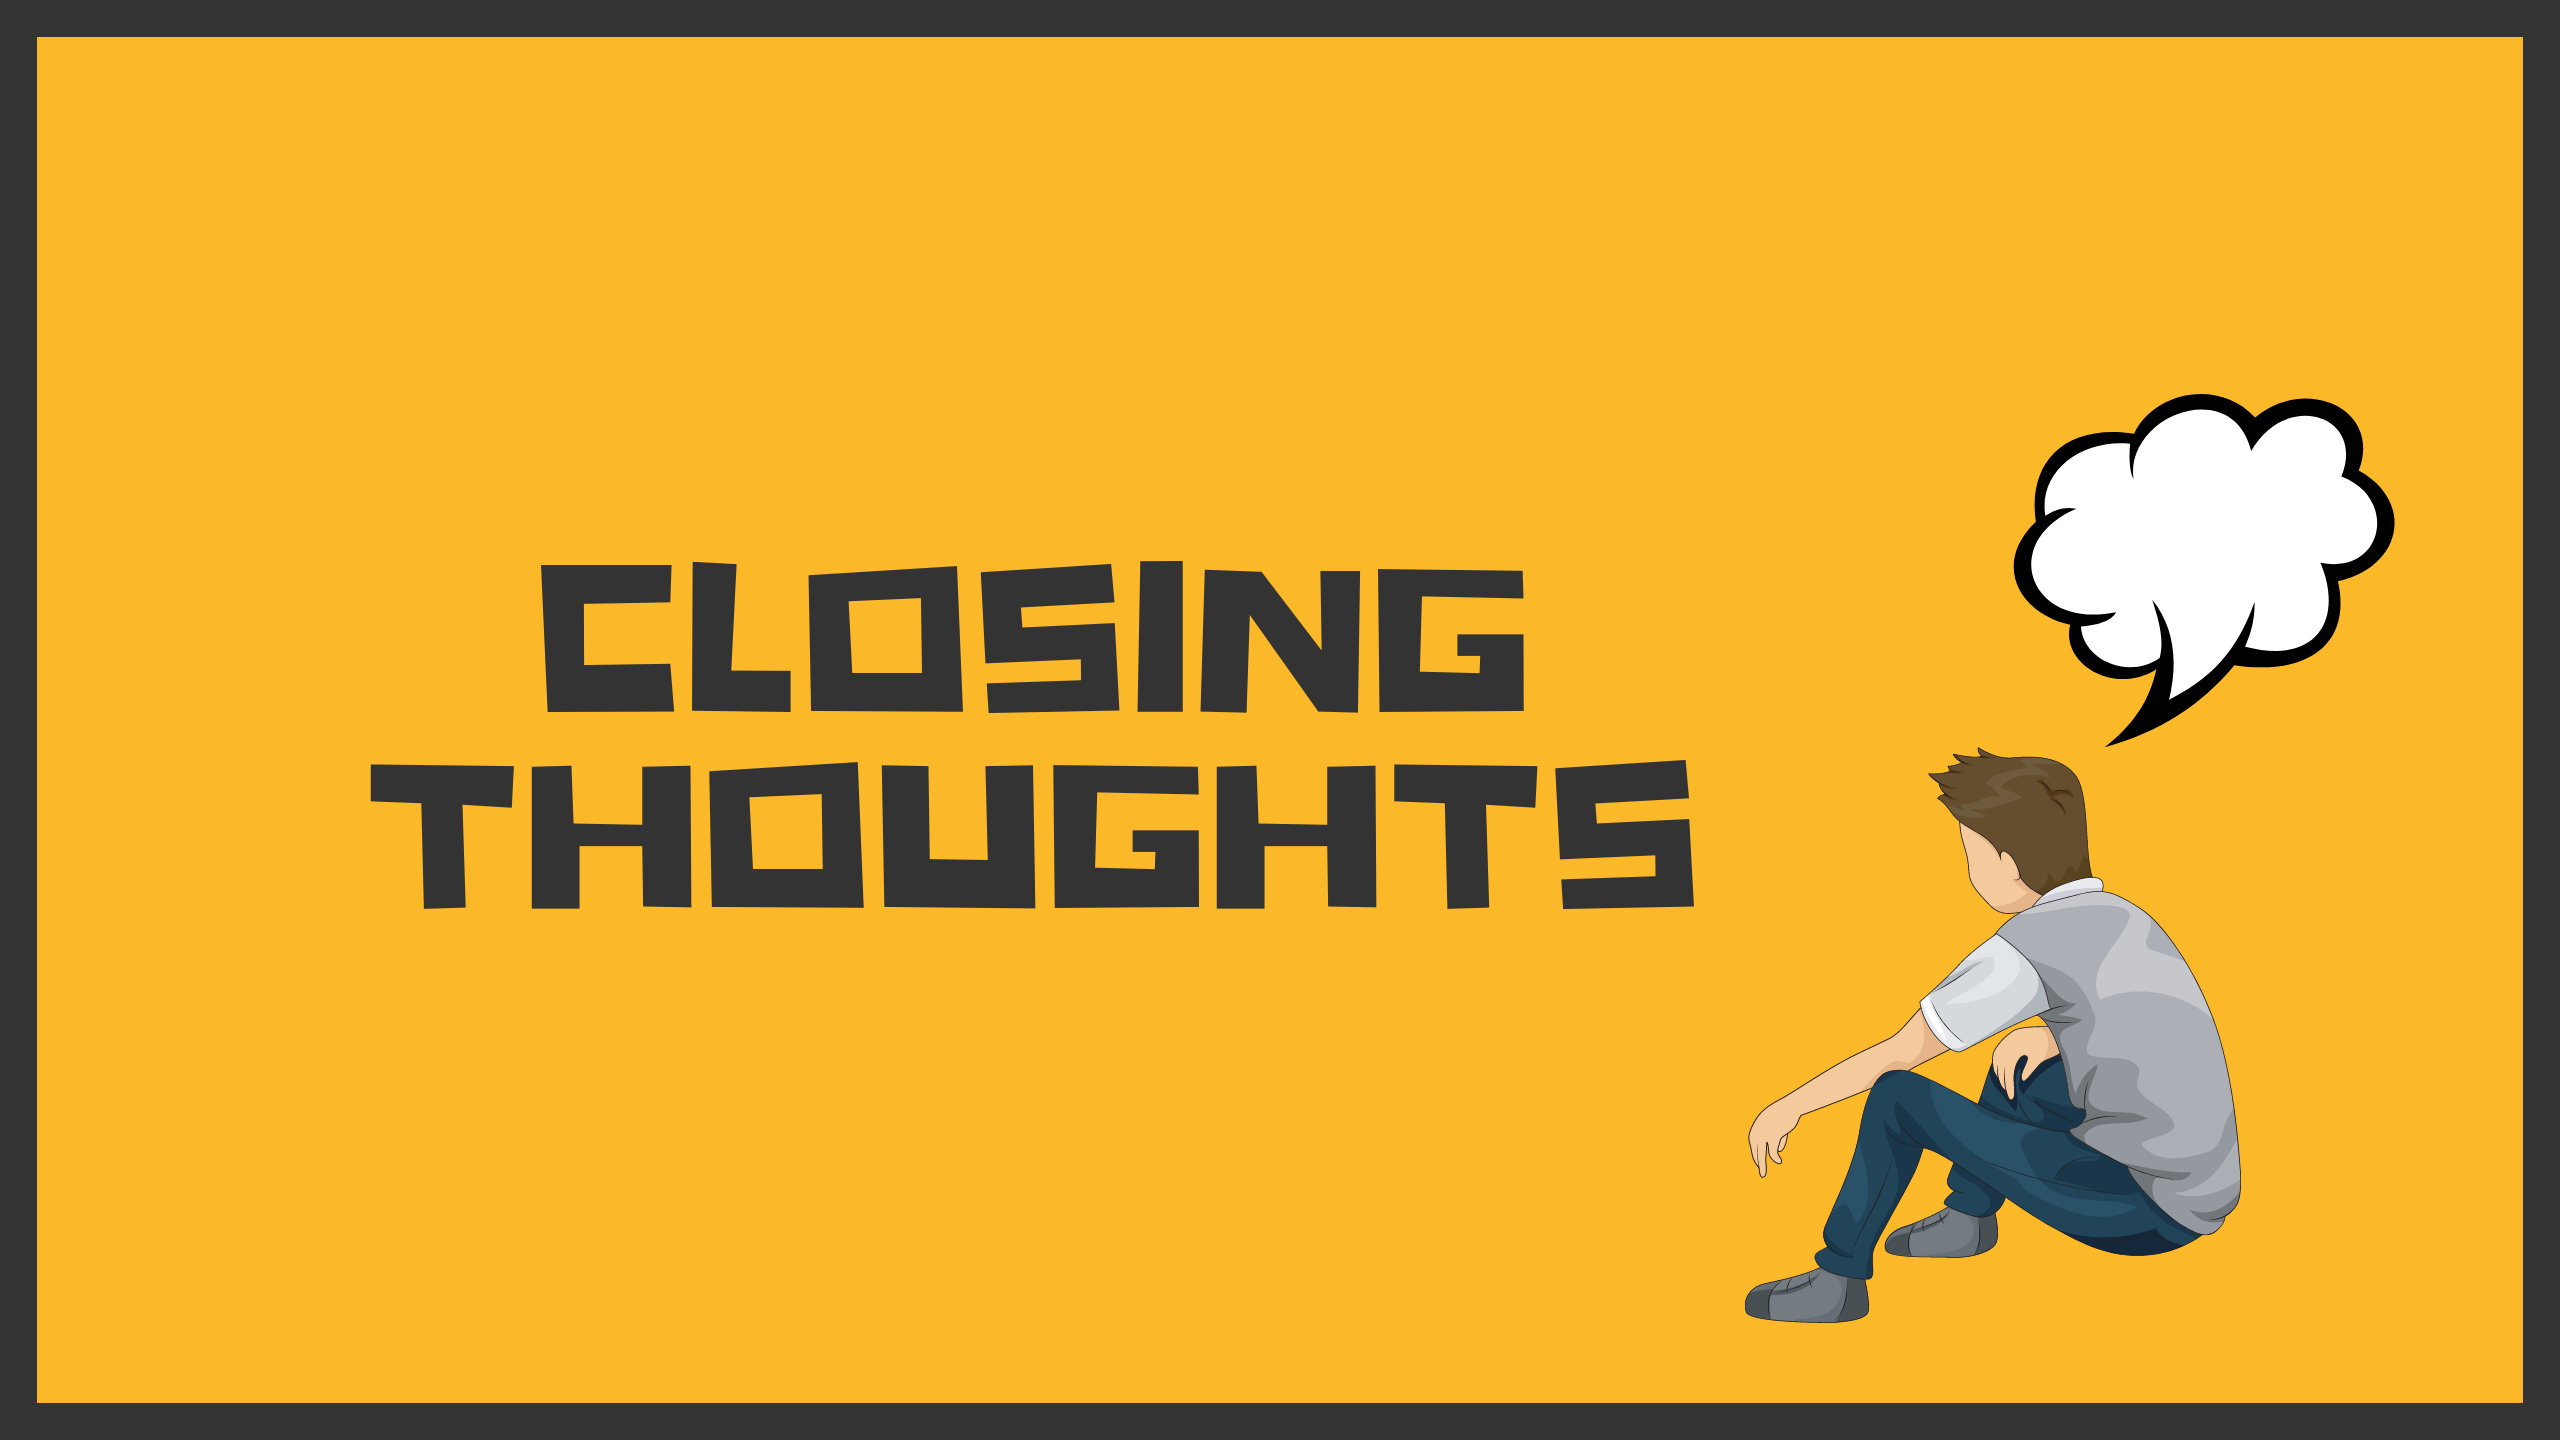 Closing thoughts cover image